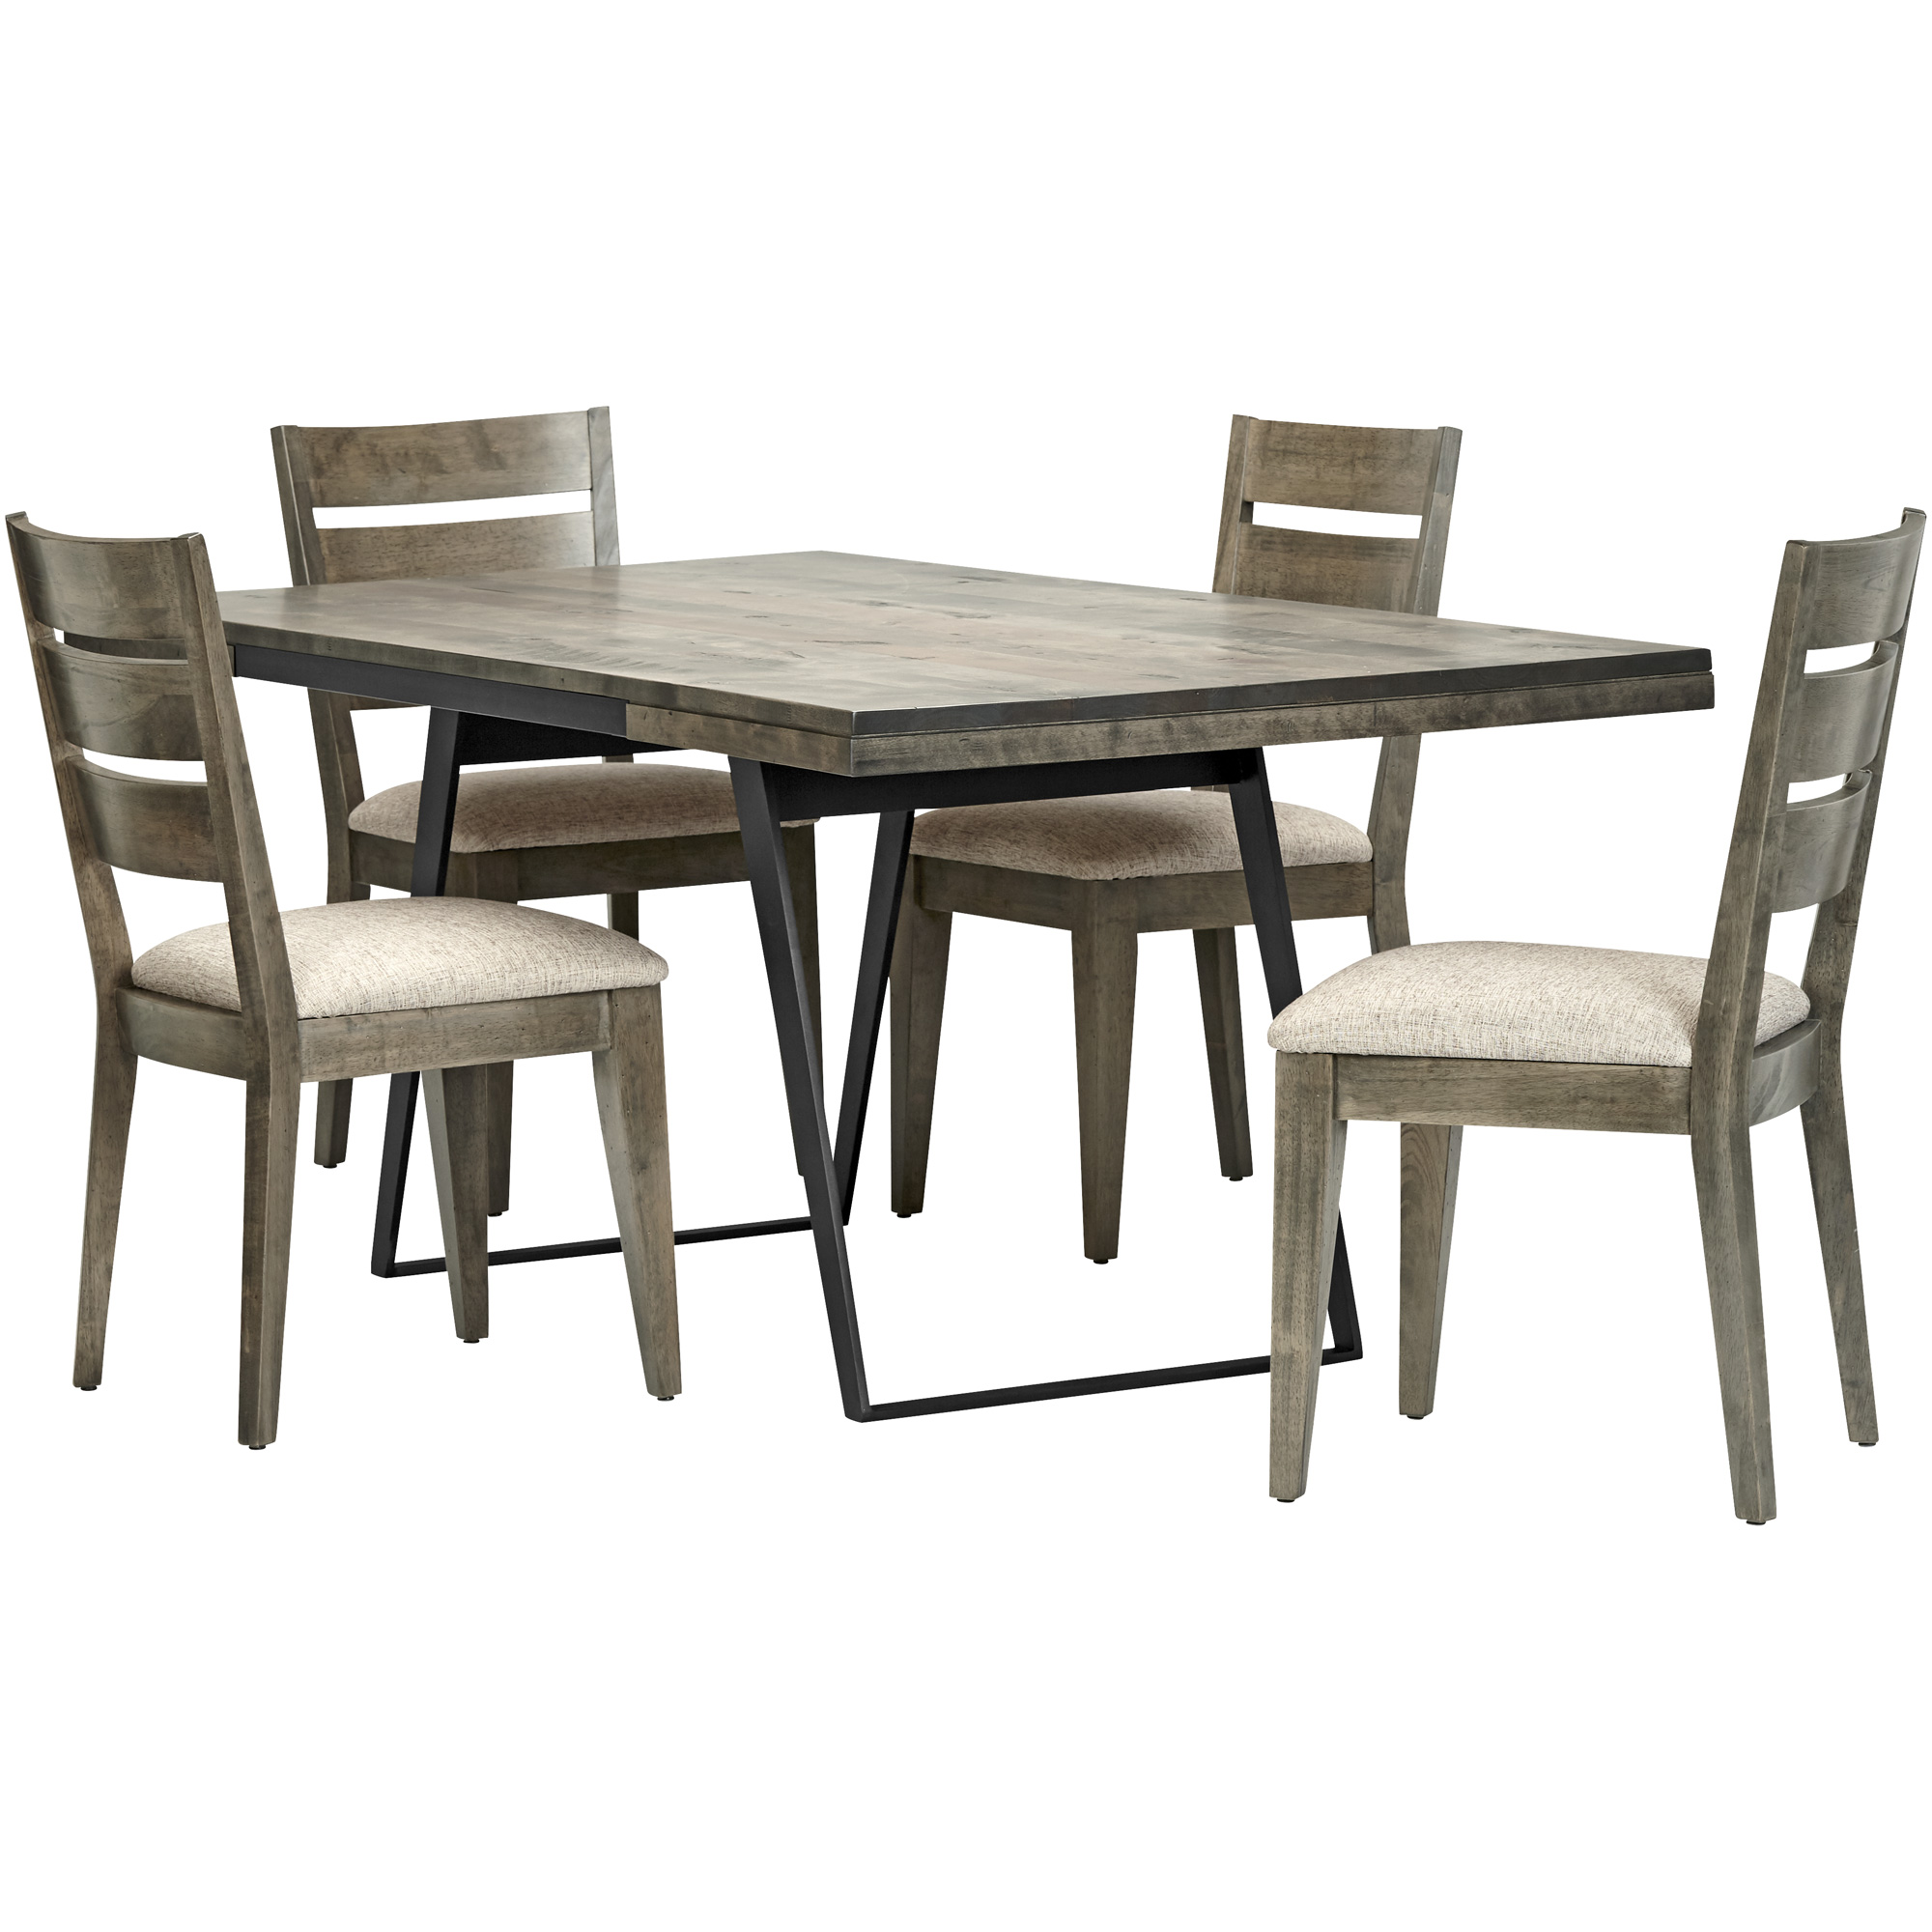 Canadel Furniture | Uptown Gray 5 Piece Ladder Back Dining Set